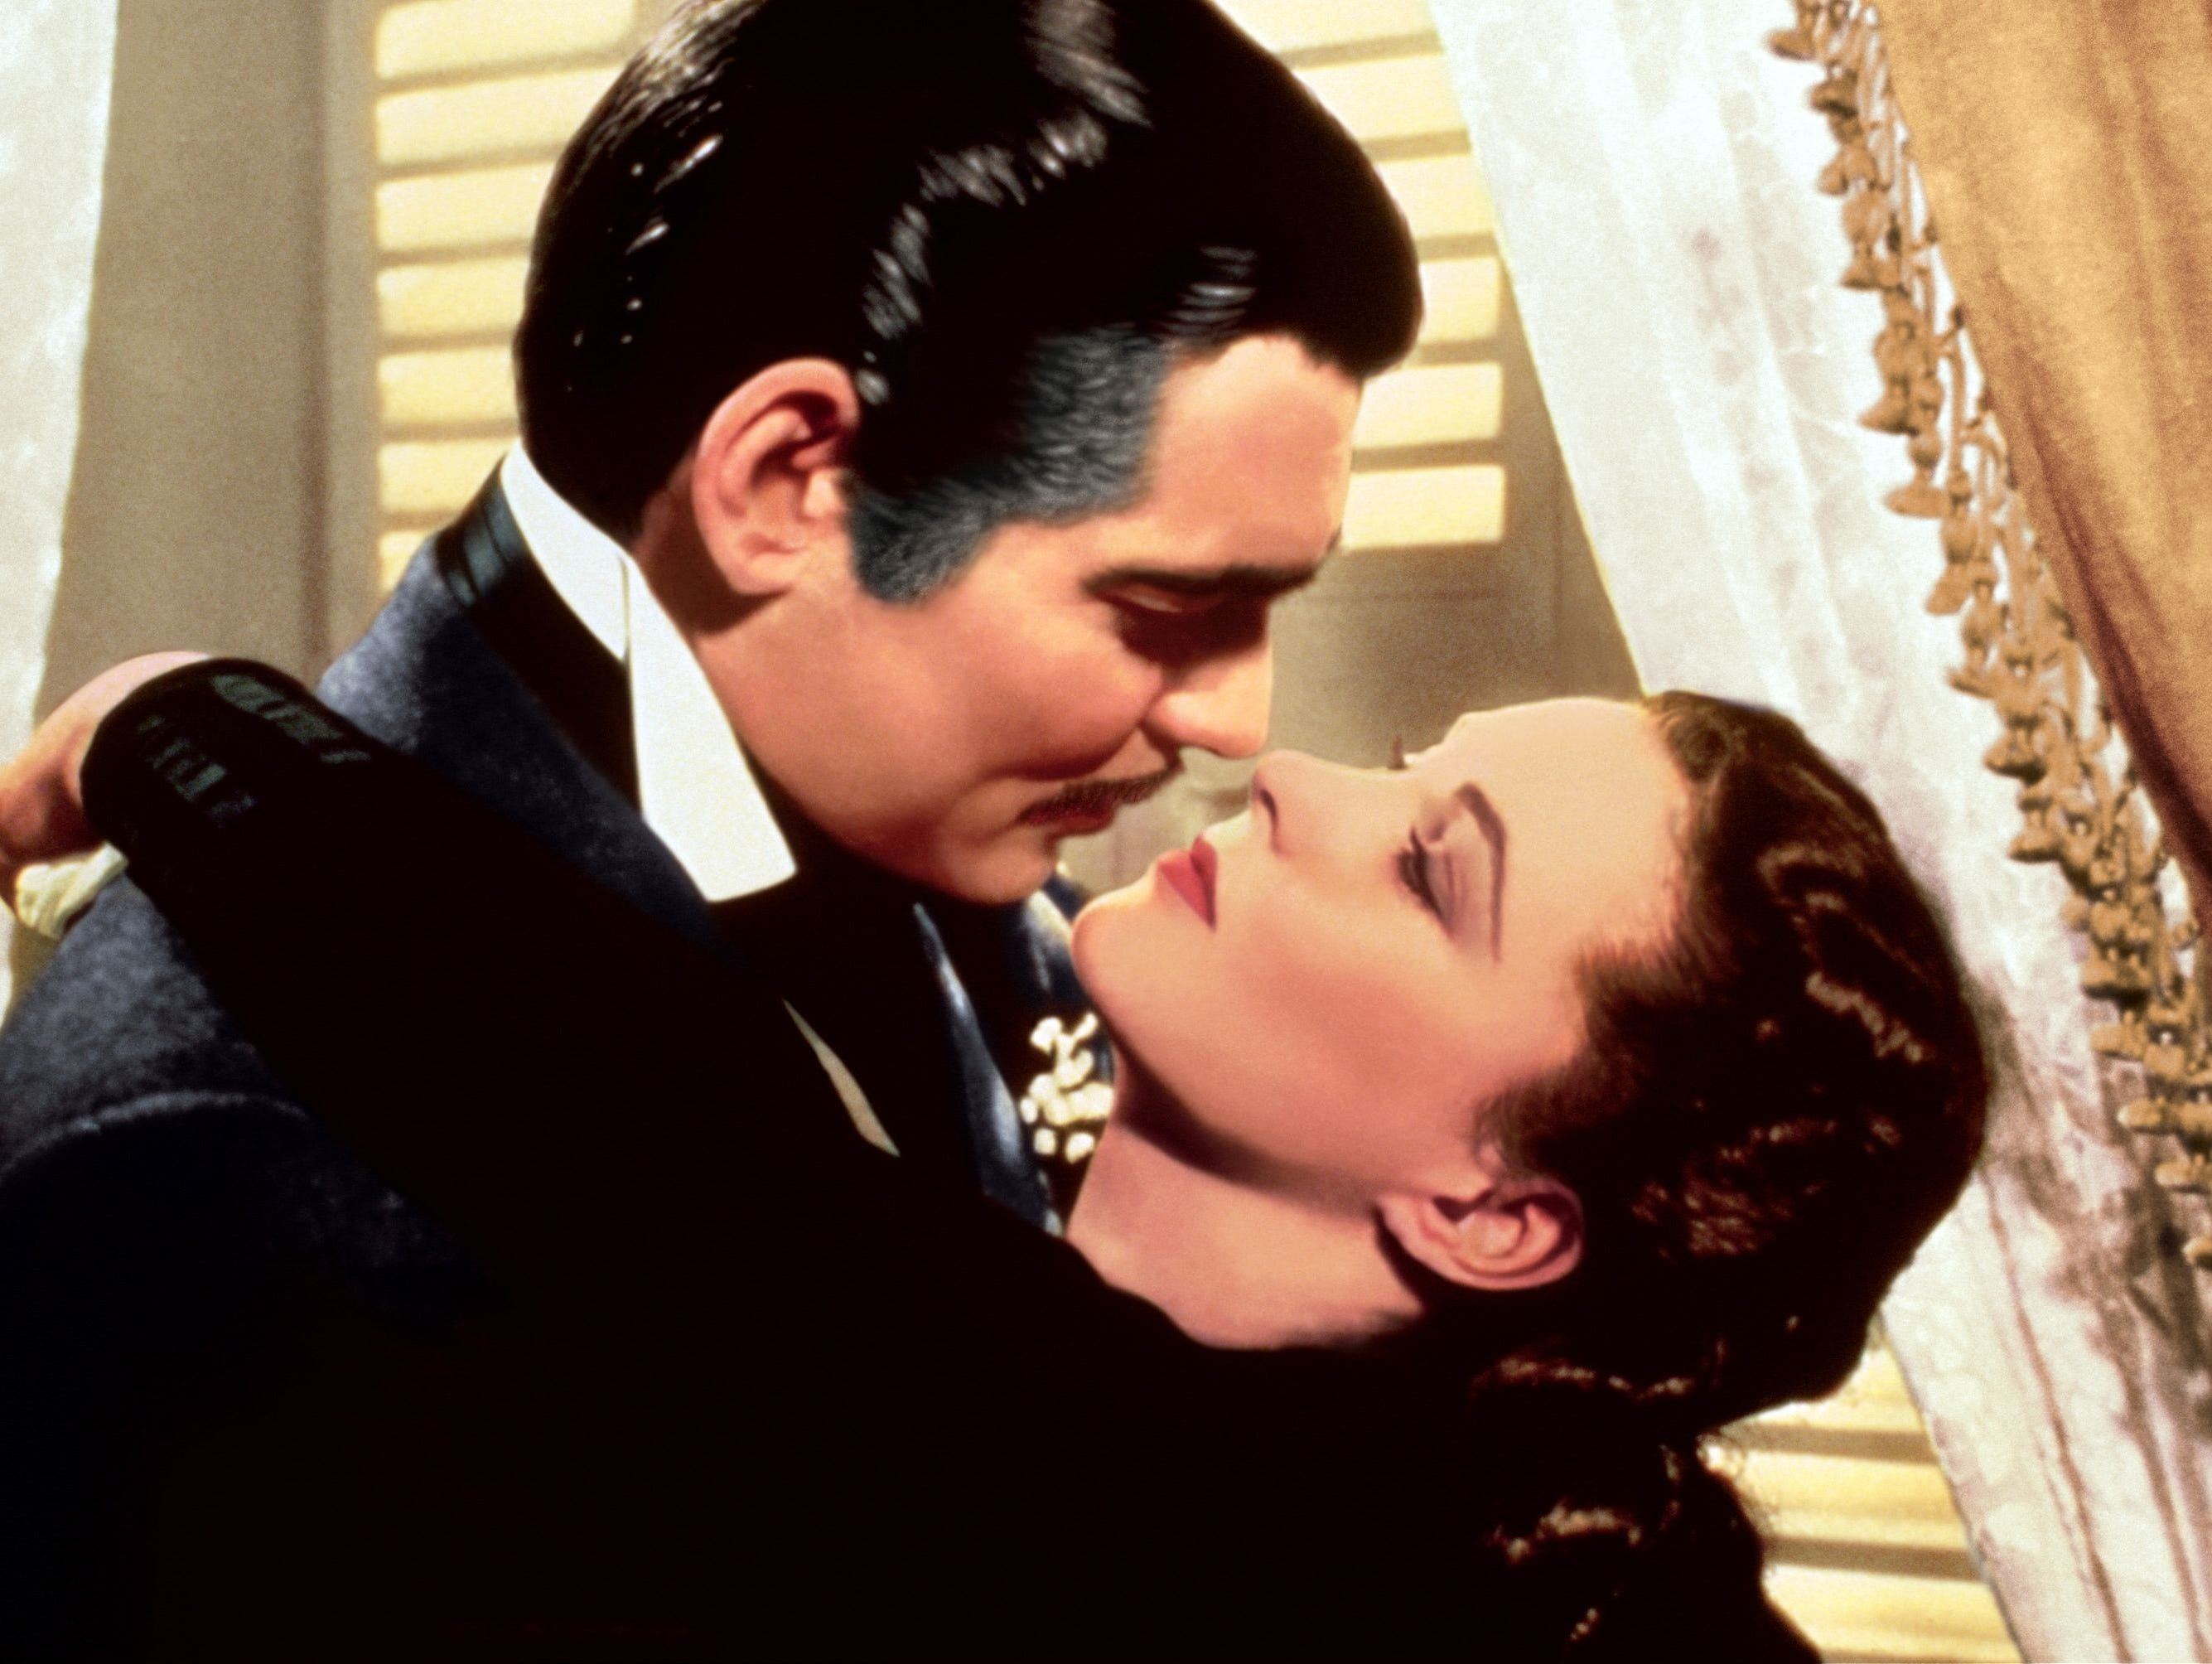 'Gone With the Wind': The sweeping scale of this Civil War-era drama is breathtaking, as are Vivien Leigh's iconic costumes.